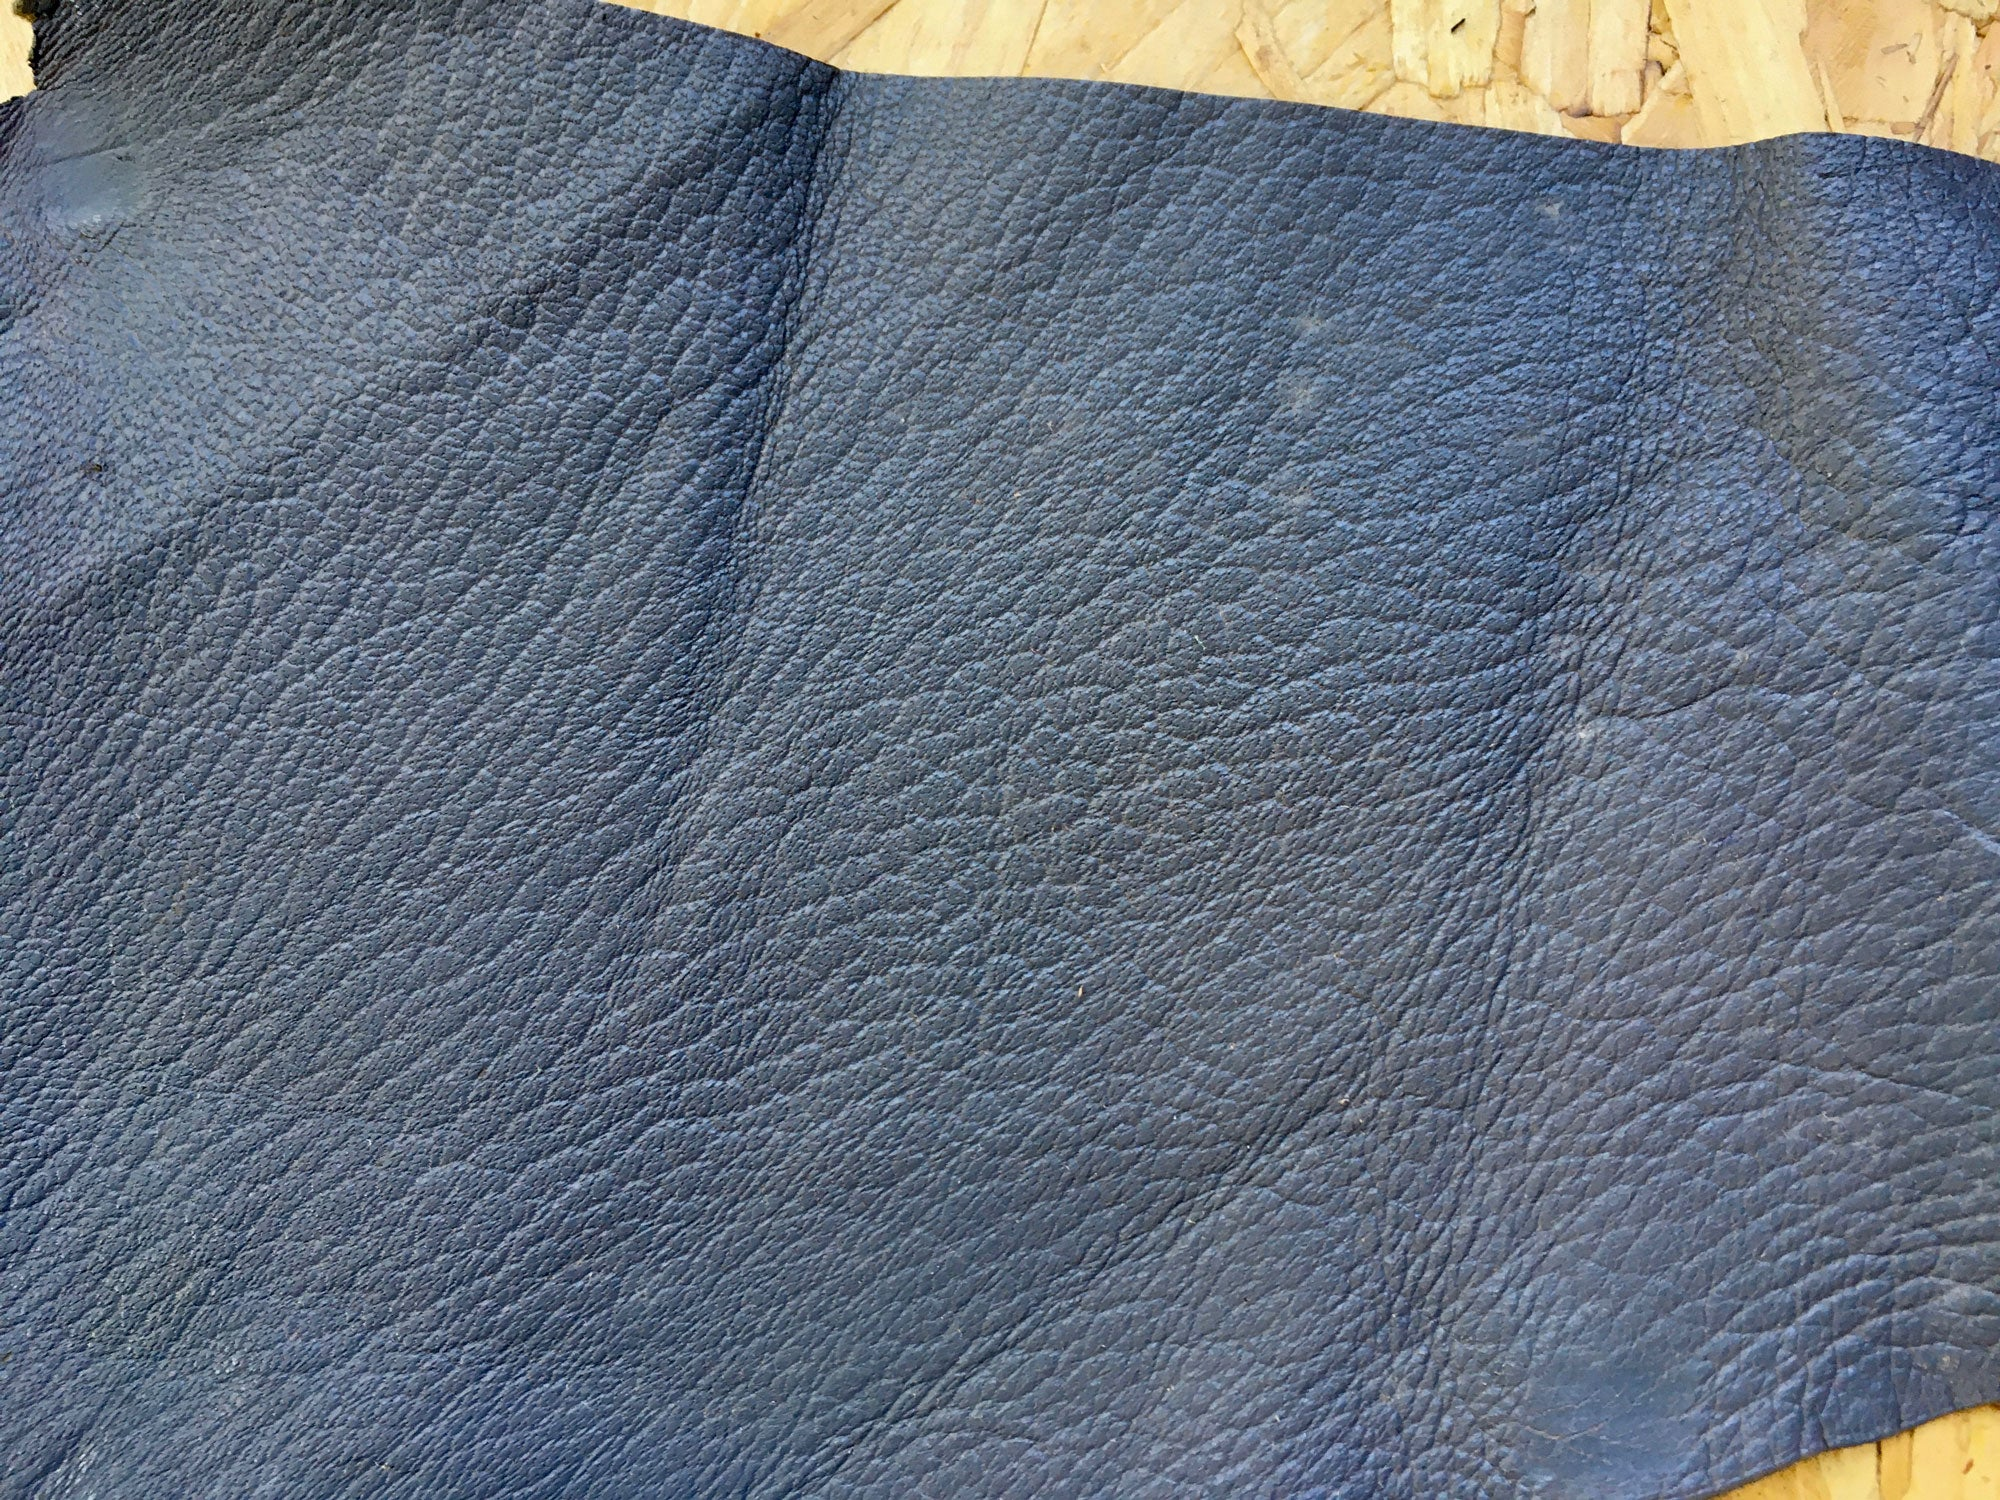 Scrap Leather Offcuts – Grey Goatskin Leather Pieces